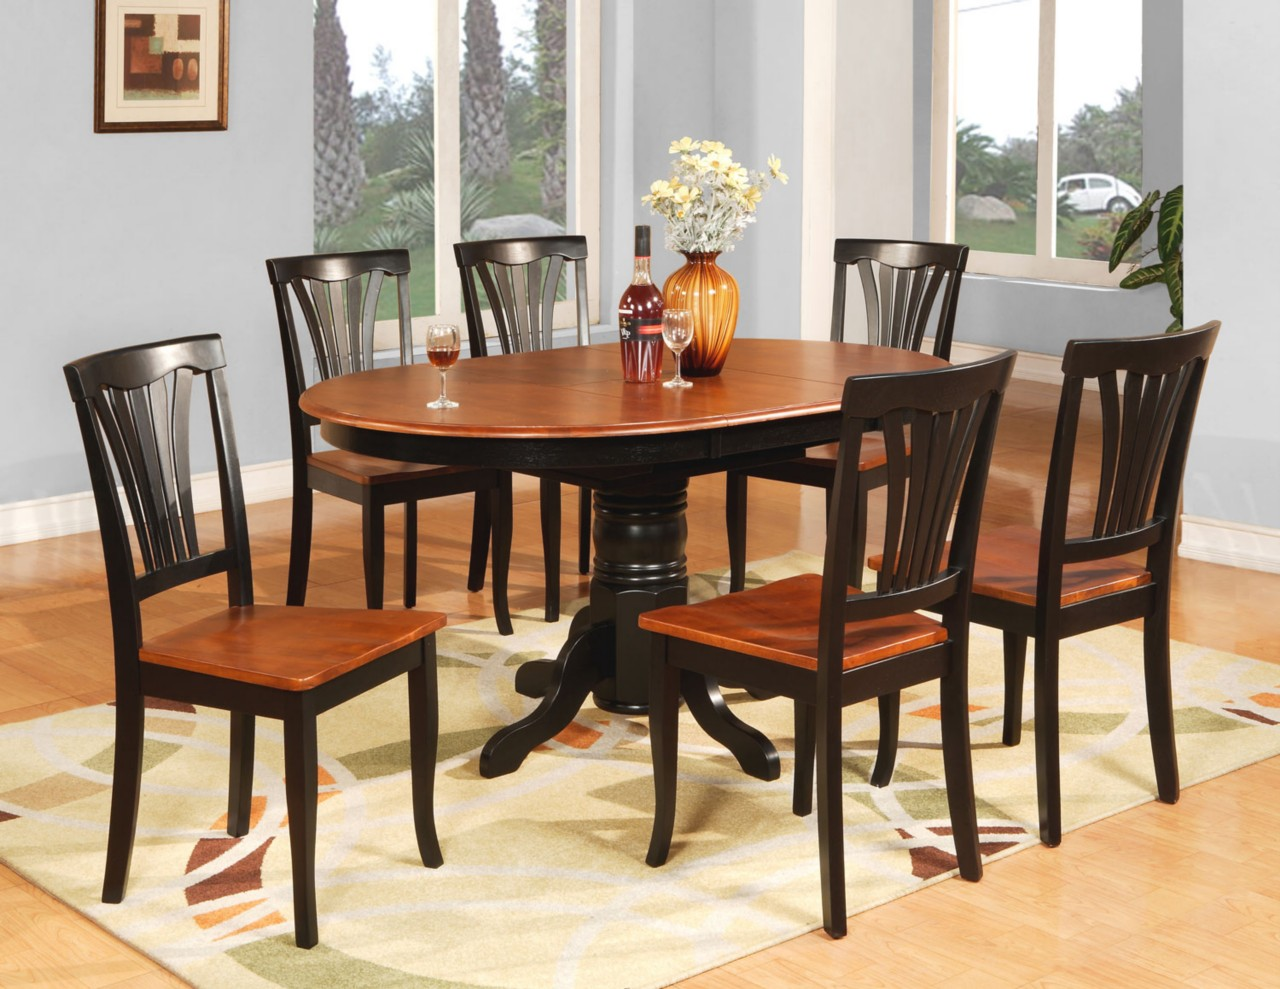 kitchen and dining furniture 7 pc oval dinette kitchen dining room table amp 6 chairs ebay. Interior Design Ideas. Home Design Ideas